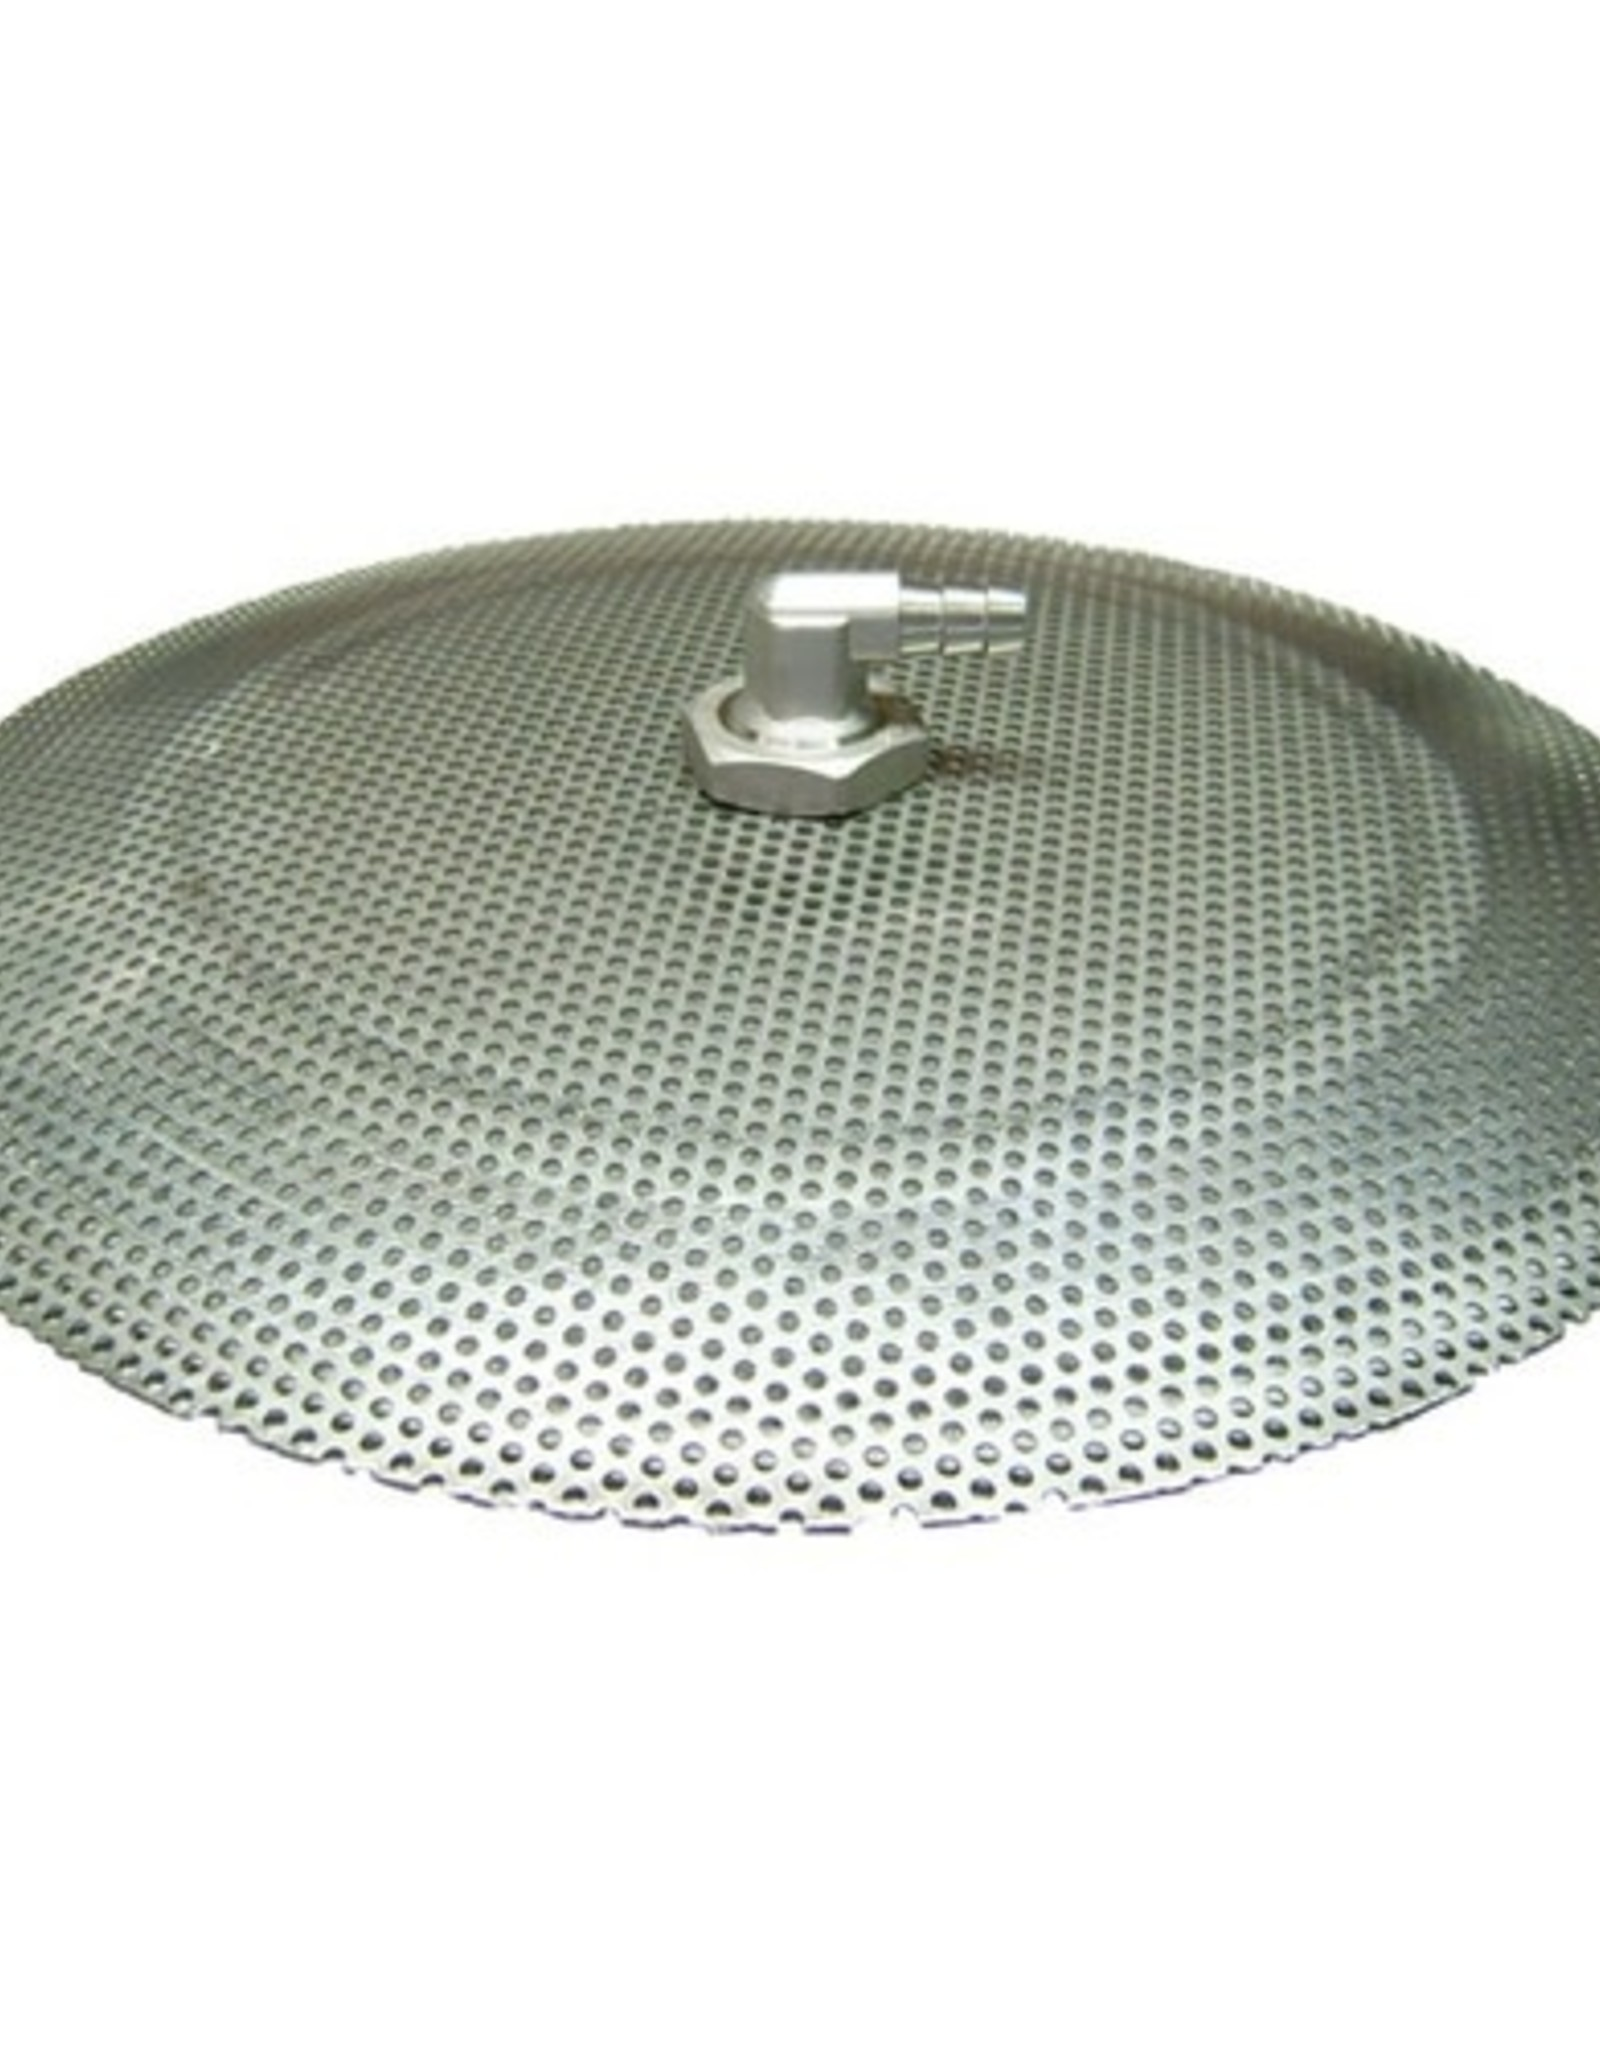 FALSE BOTTOM 12""